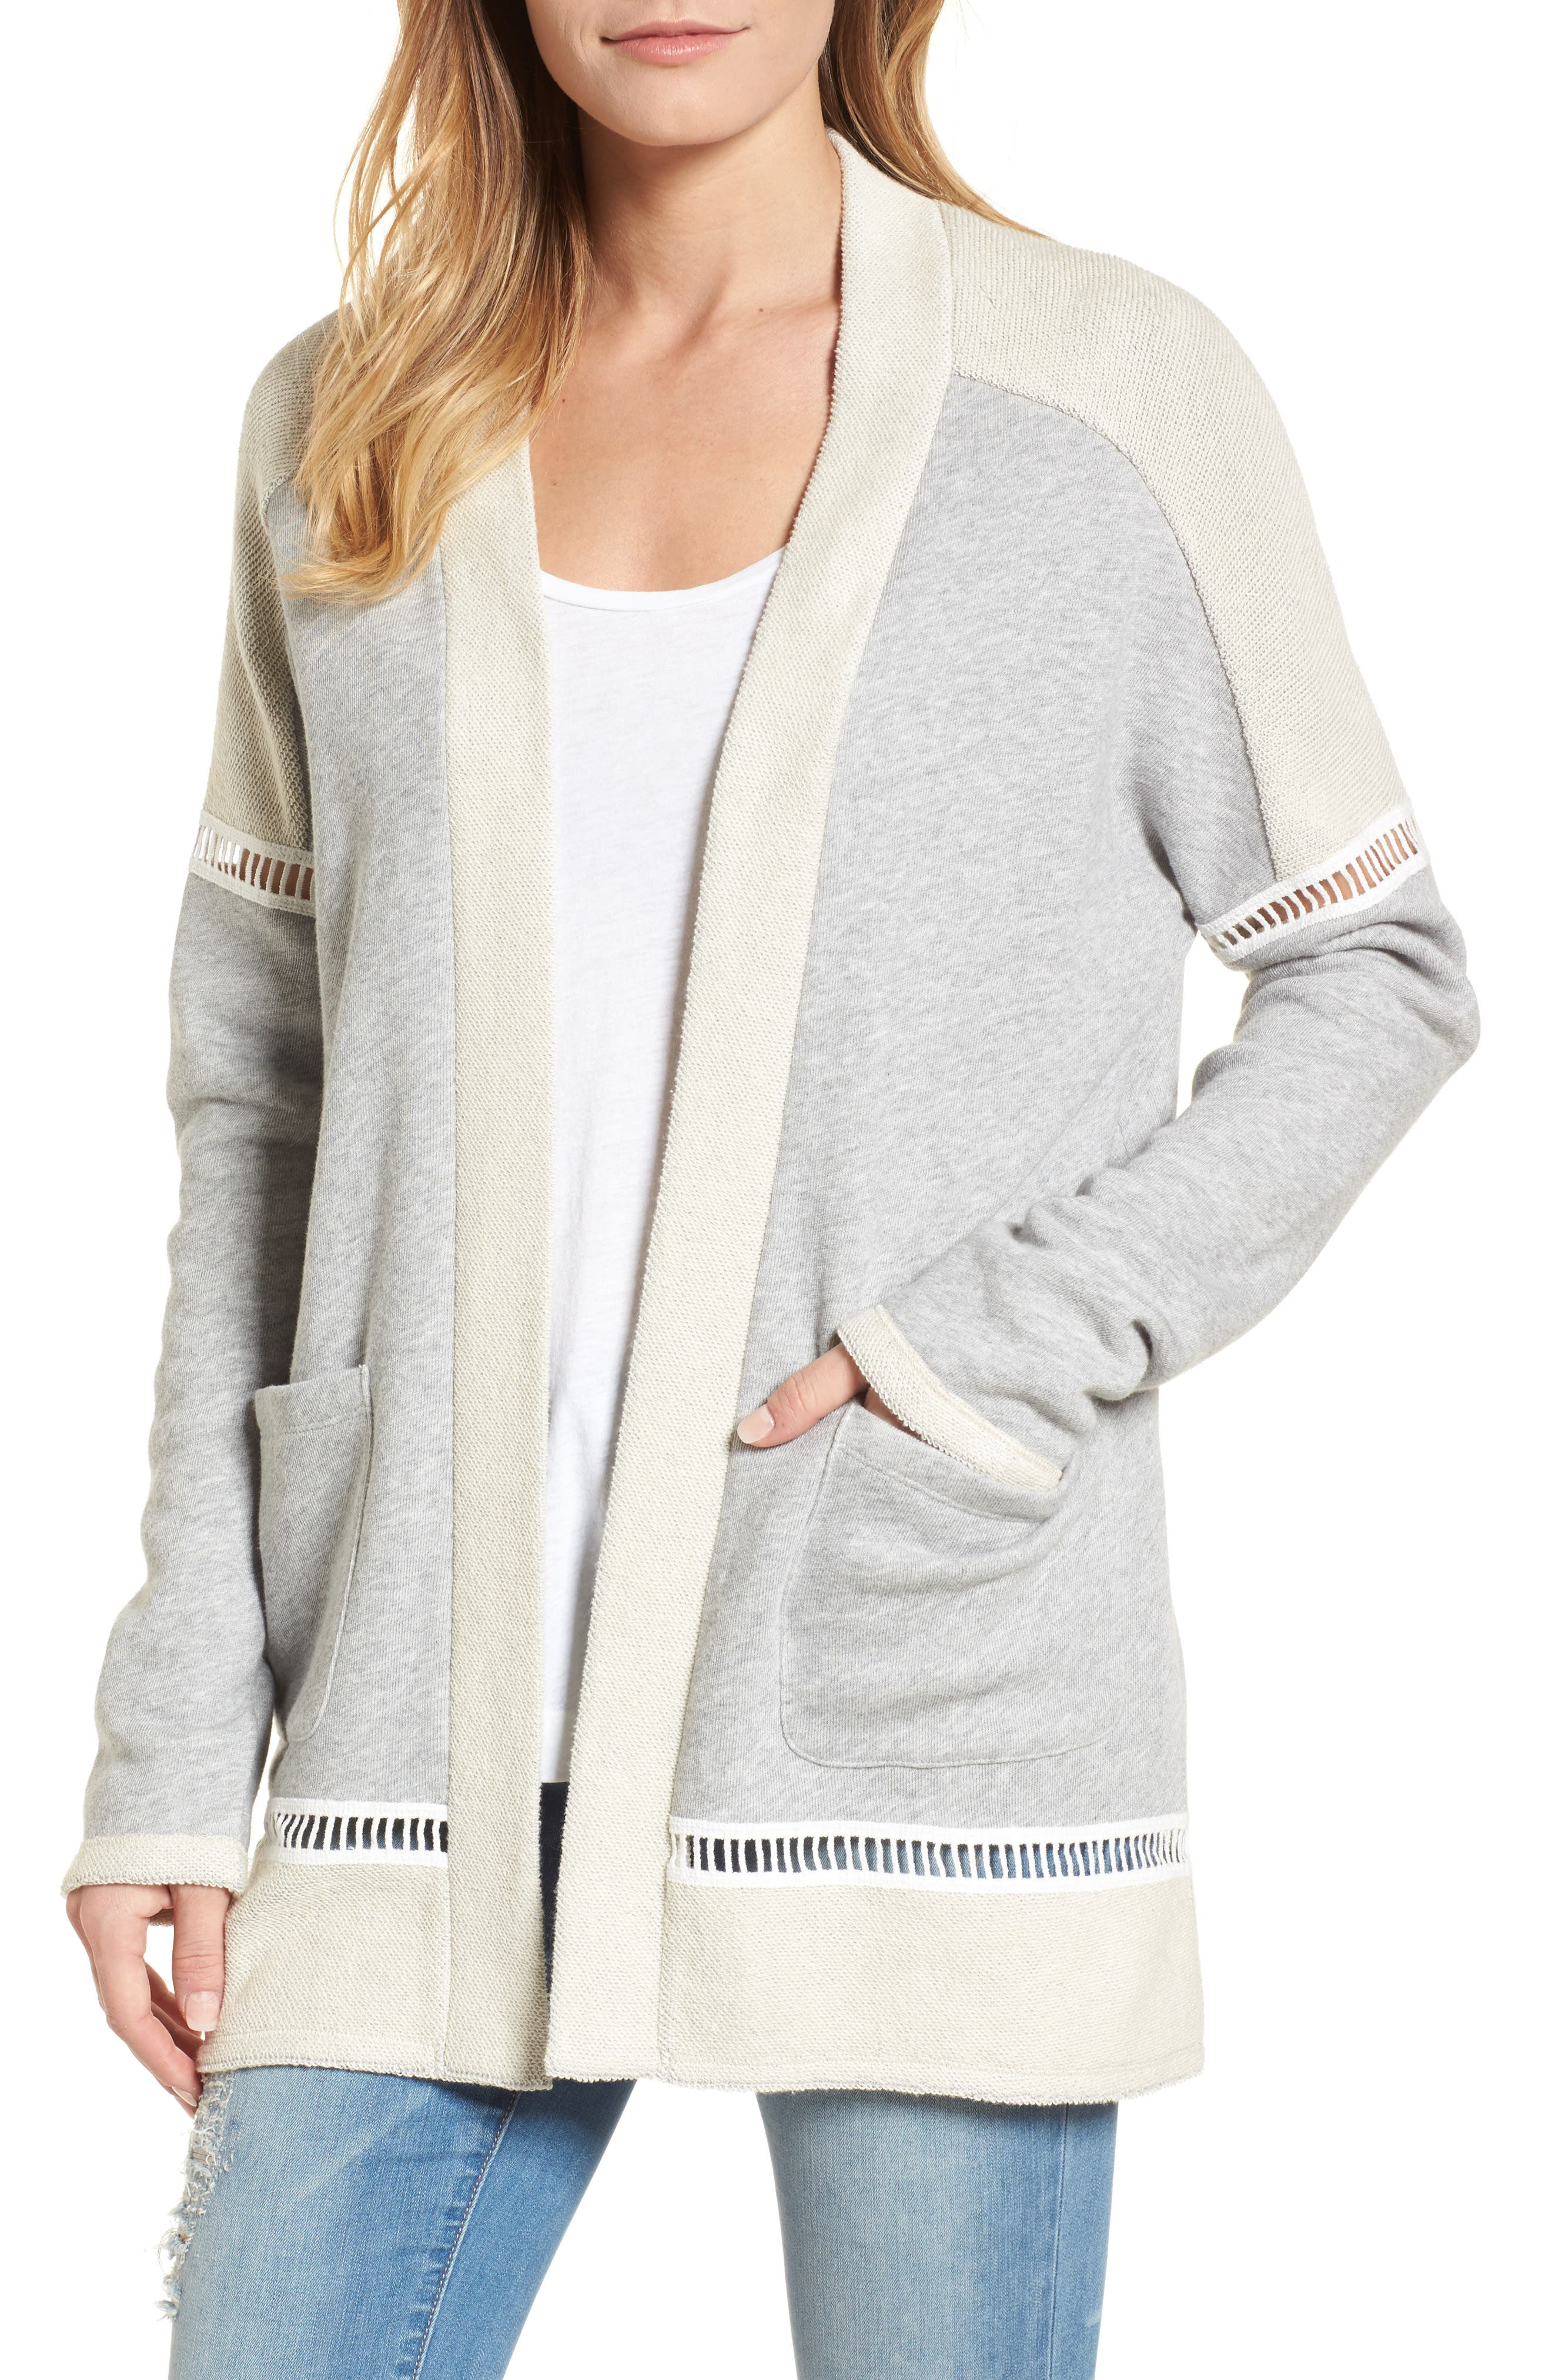 French Terry Open Front Cotton Cardigan,                             Main thumbnail 1, color,                             Grey Heather